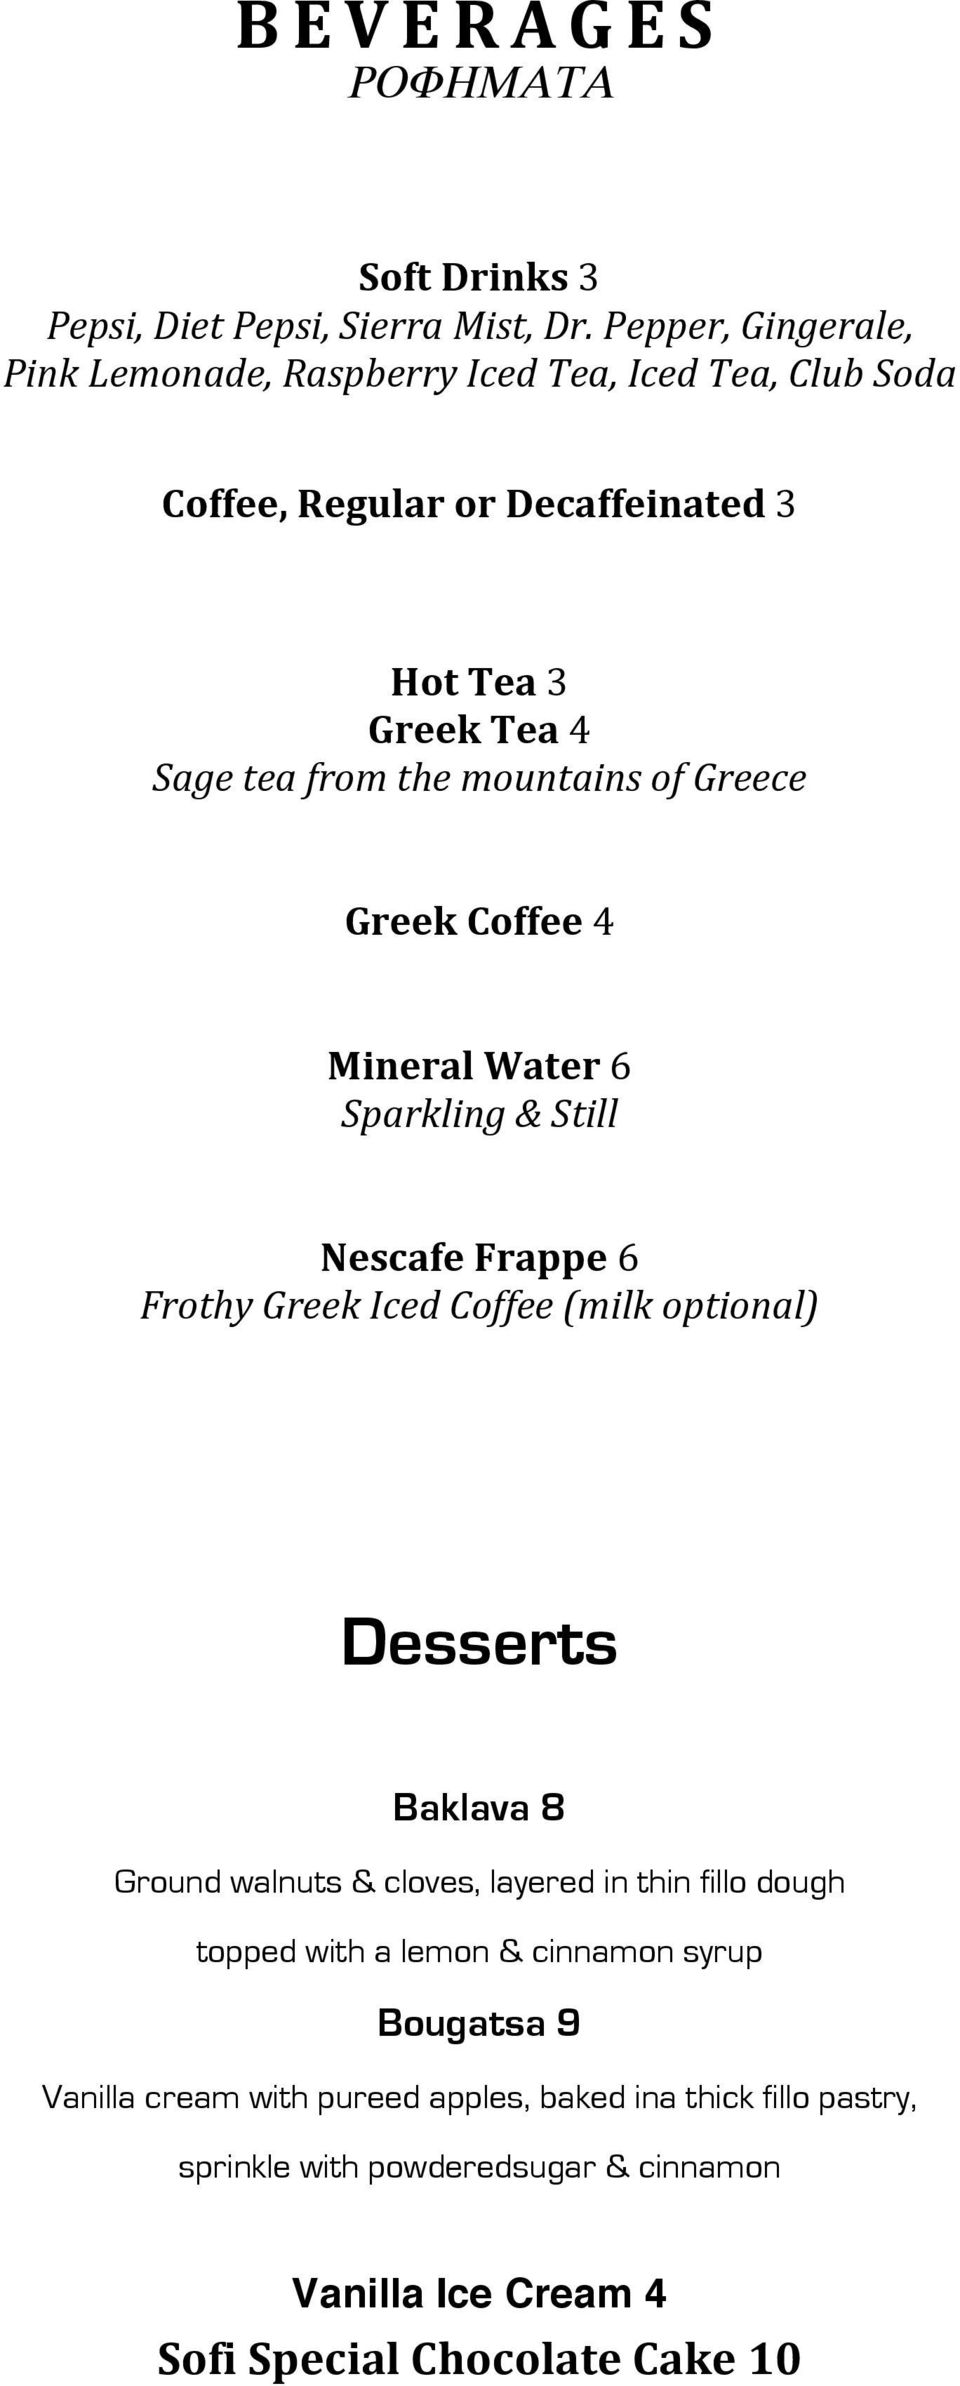 mountains of Greece Greek Coffee 4 Mineral Water 6 Sparkling & Still Nescafe Frappe 6 Frothy Greek Iced Coffee (milk optional) Desserts Baklava 8 Ground